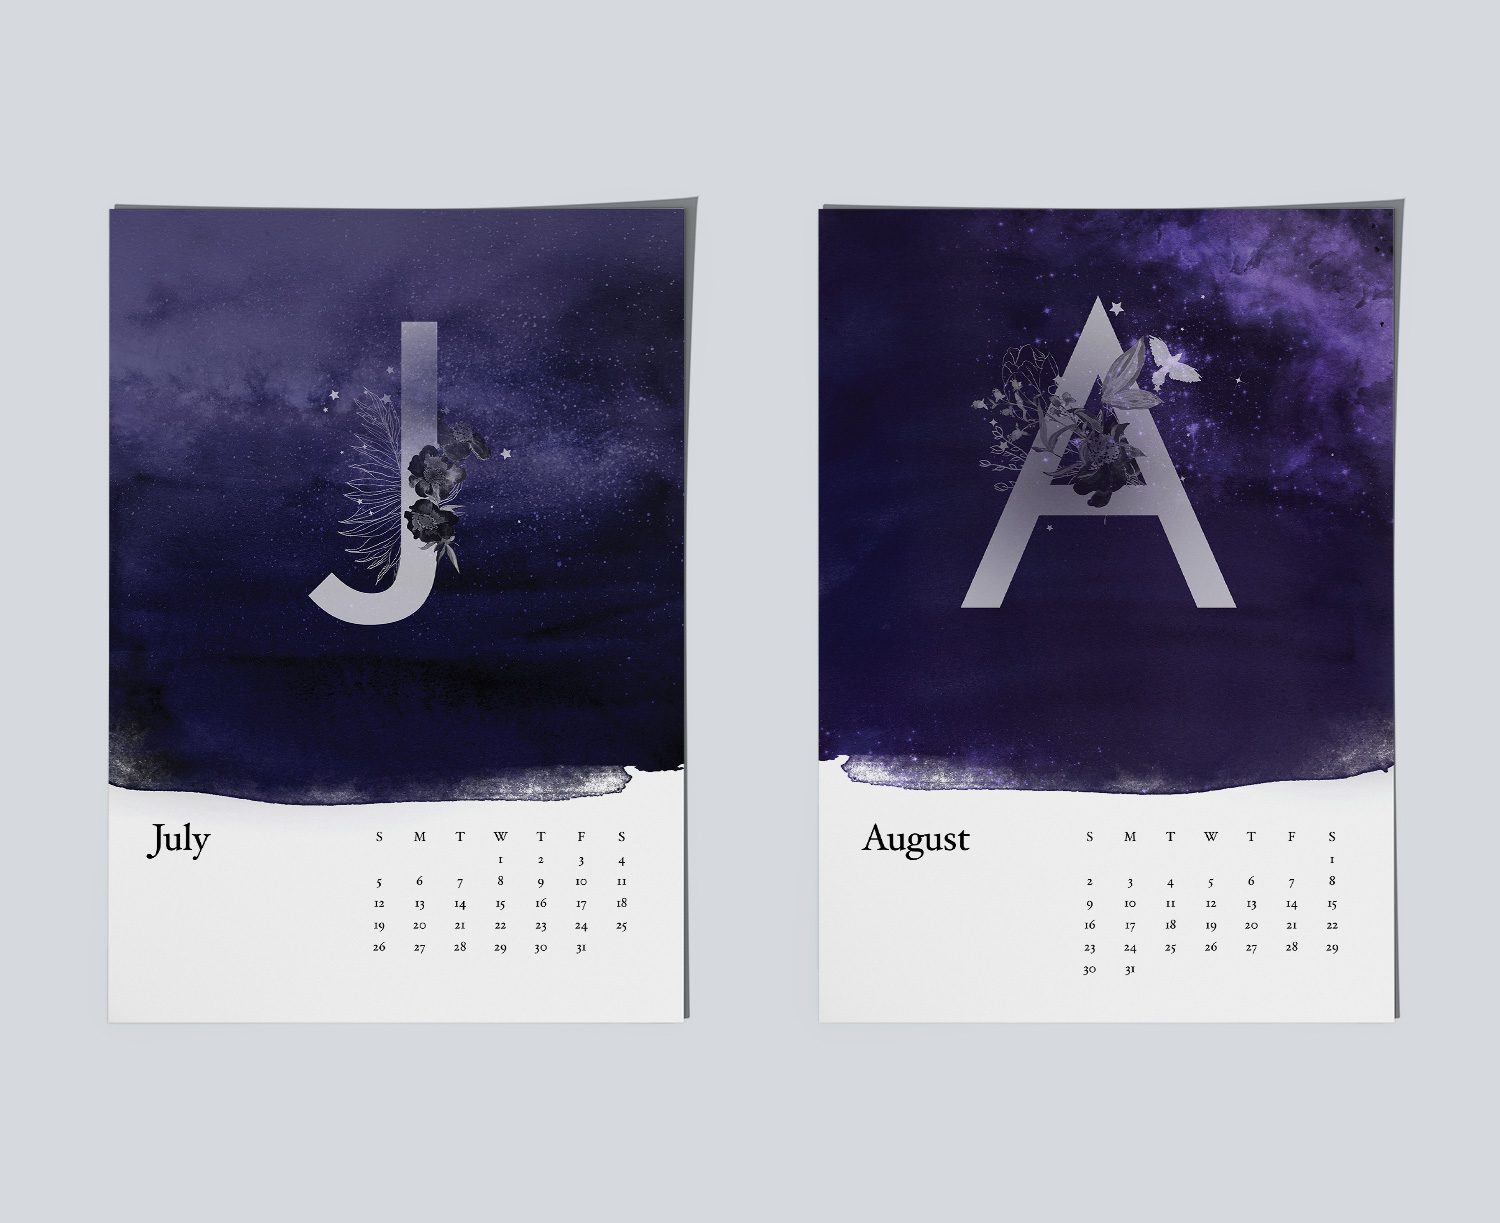 Example of magical night sky paintings for calendar.Example of magical night sky paintings for July and August months.